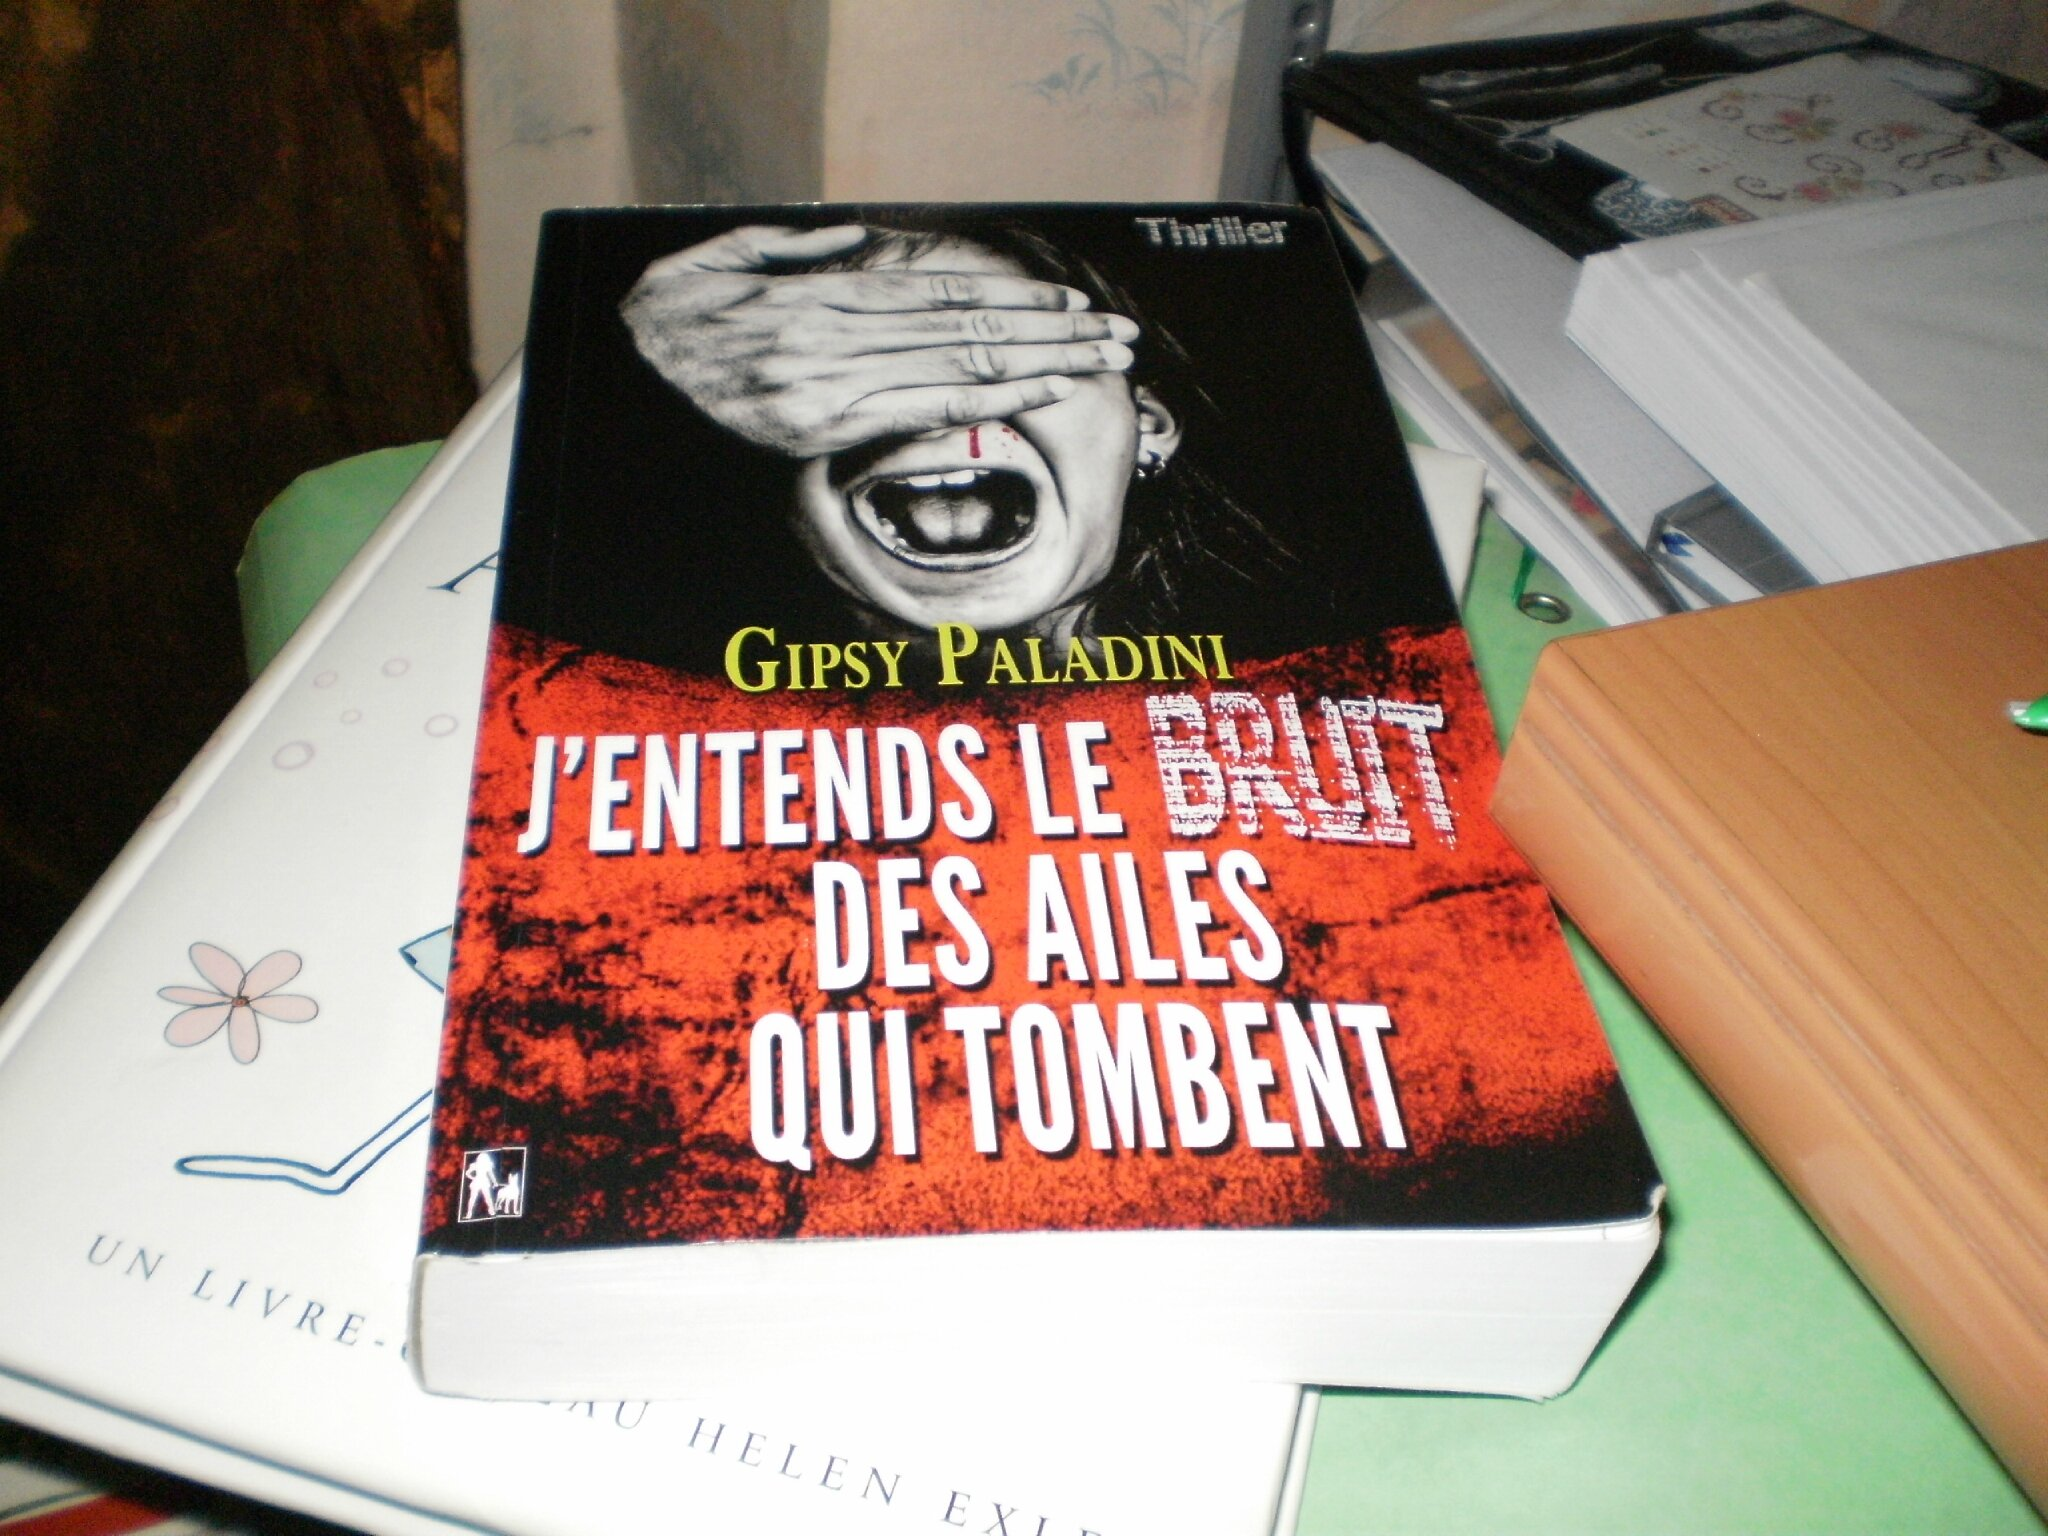 lecture : Le bruit des ailes qui tombent : Gipsy Paladini